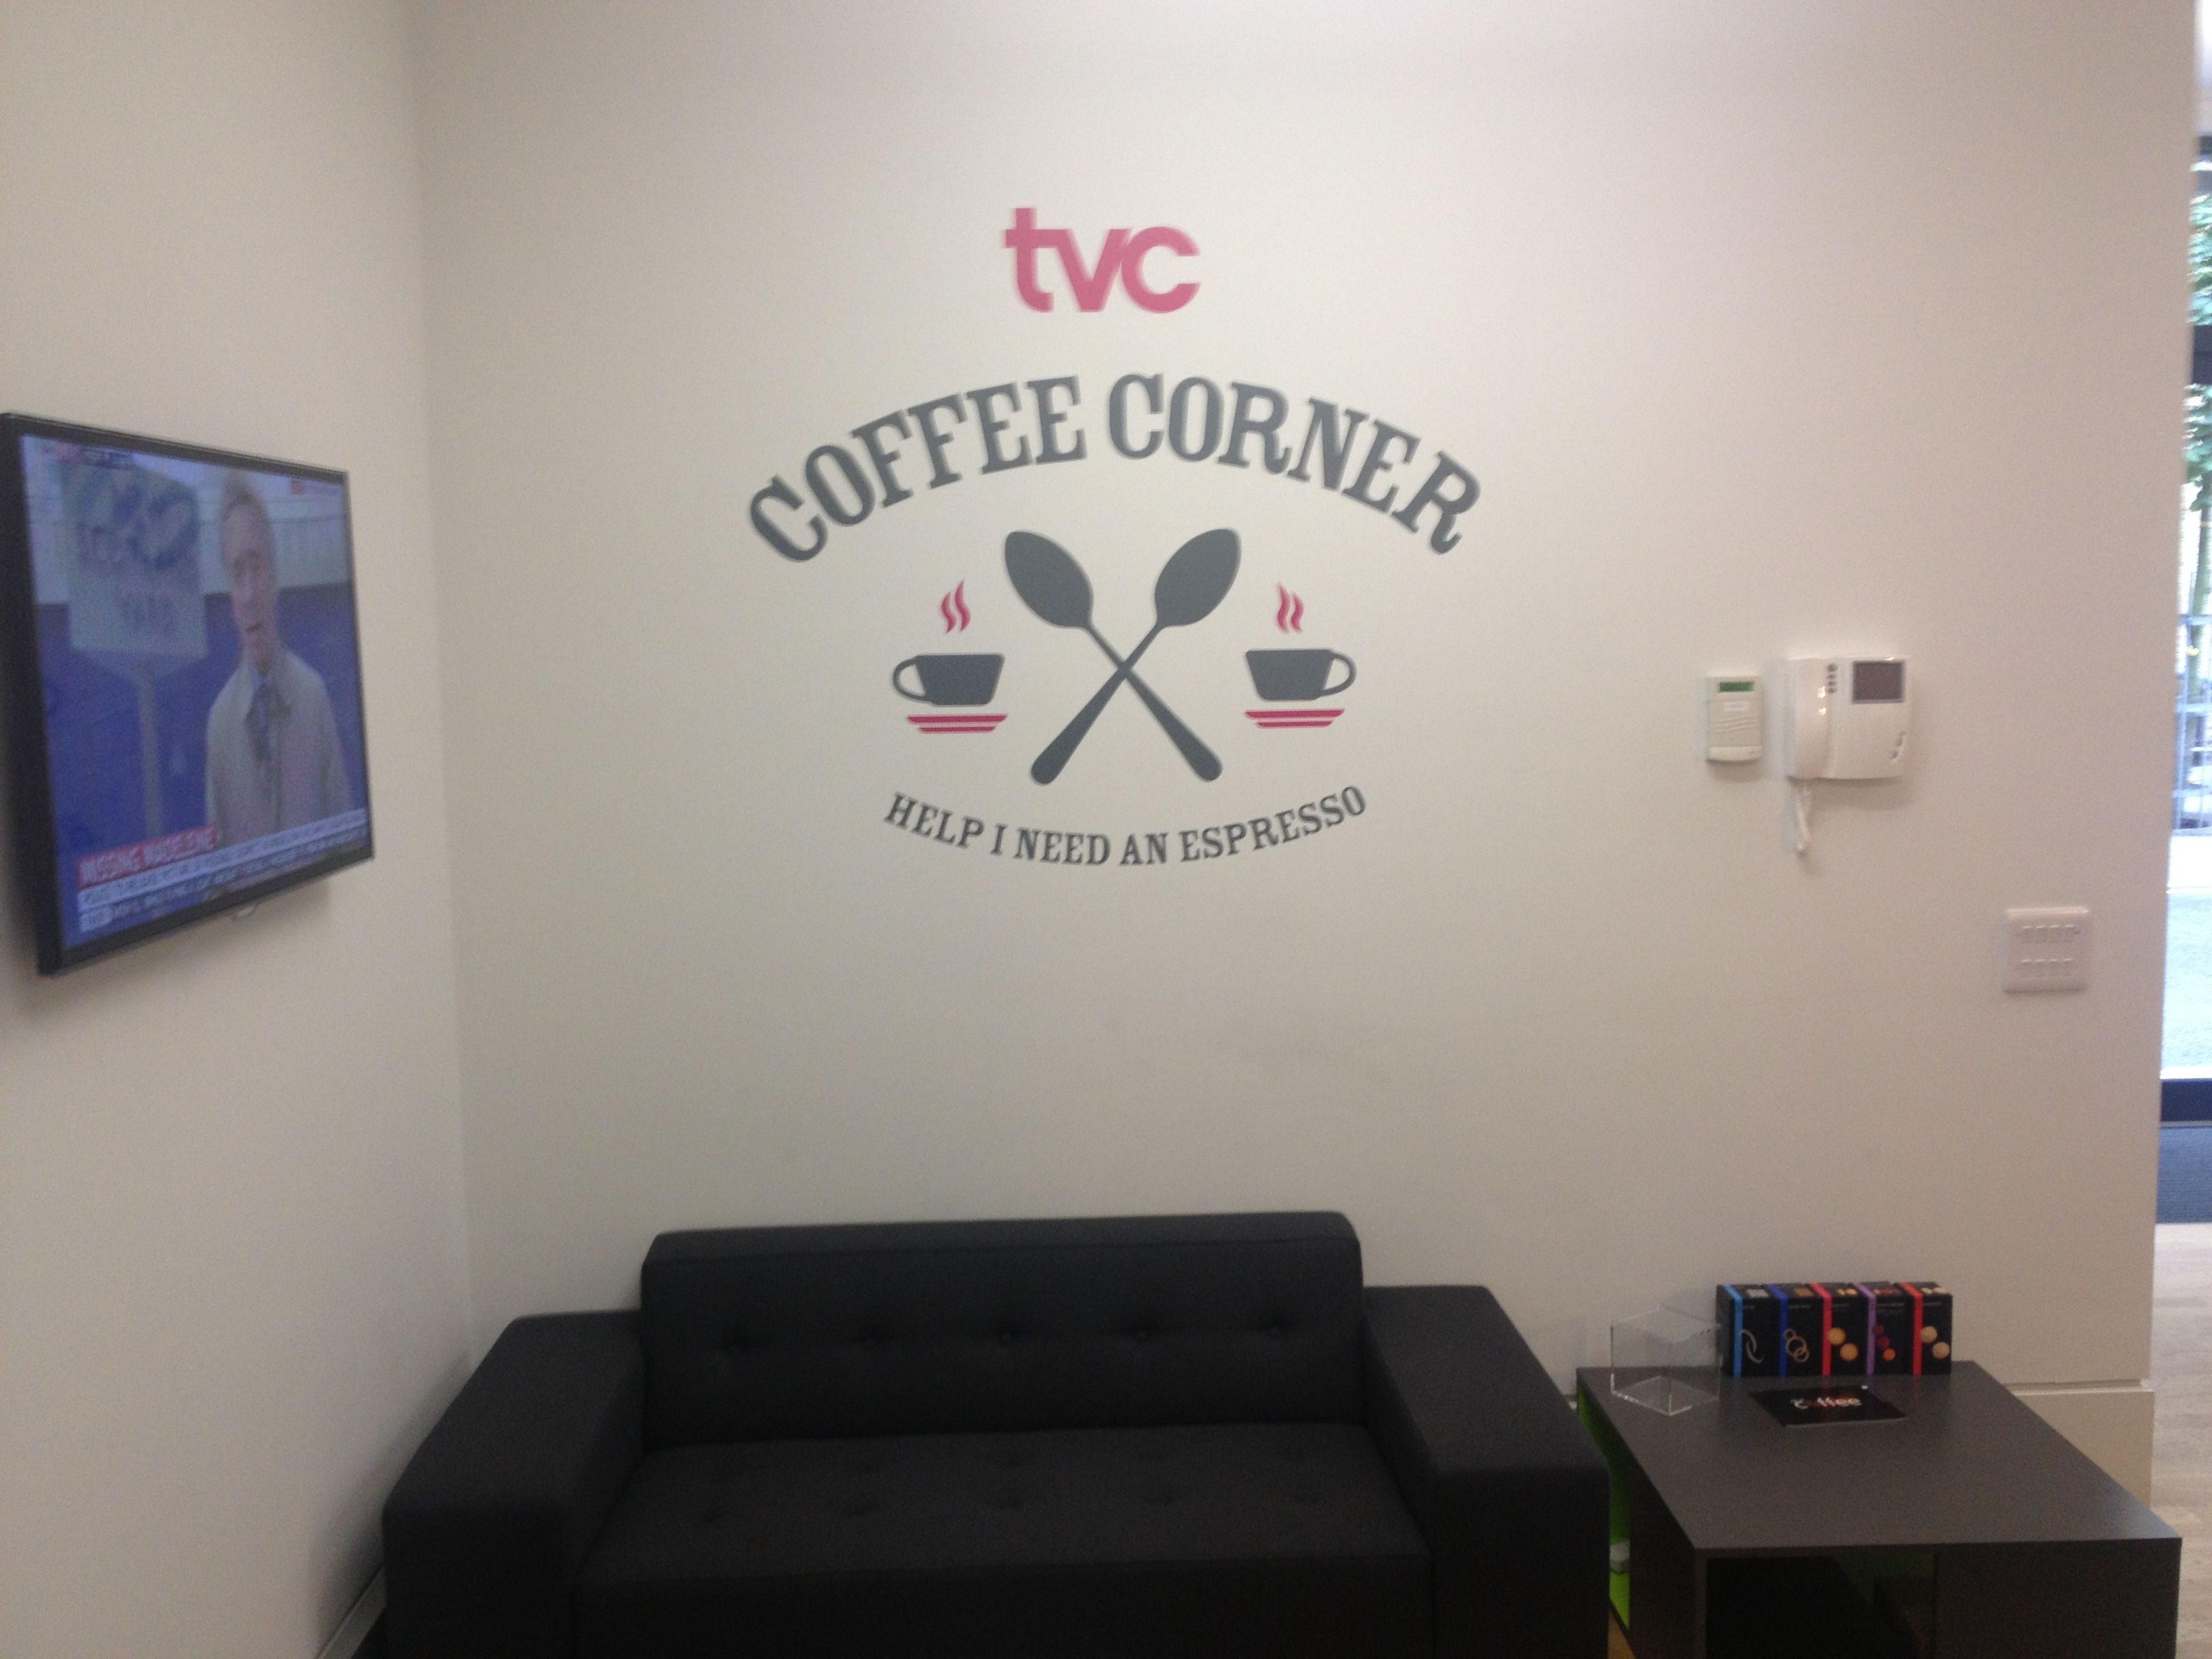 Httpvinylimpression every office should have a coffee walls amipublicfo Choice Image